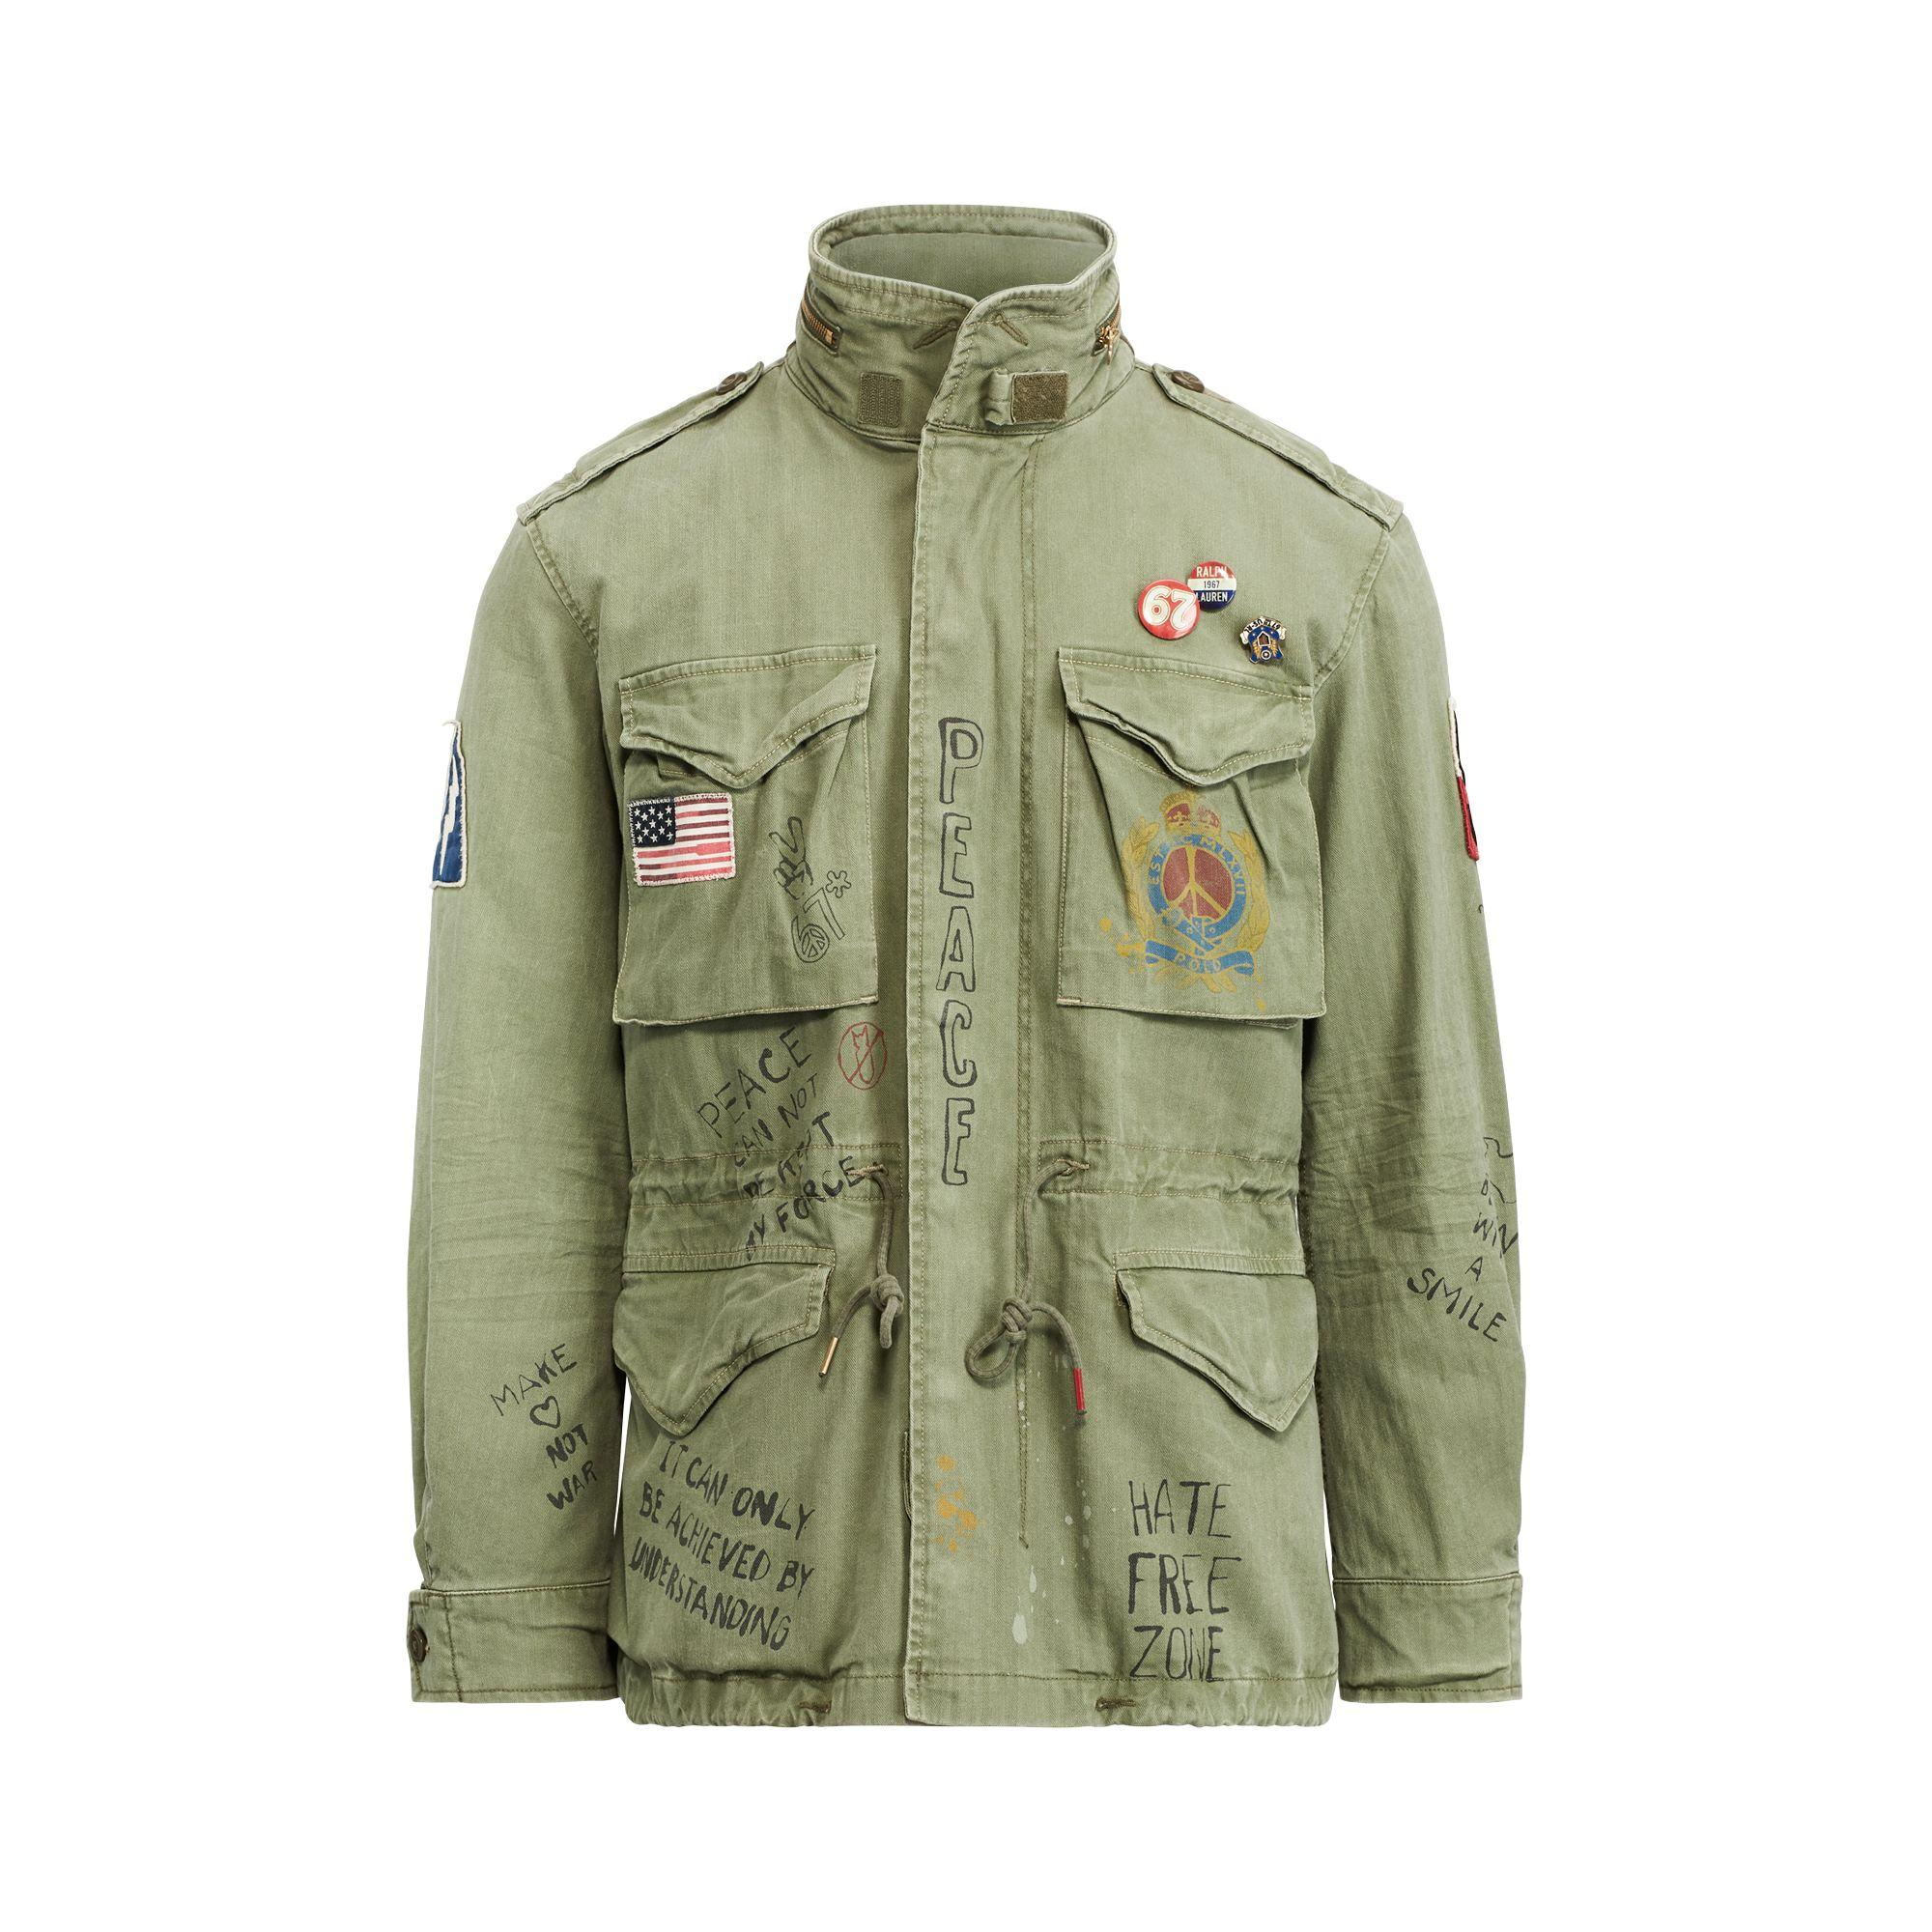 427ed441e144b Polo Ralph Lauren Twill Graphic Field Jacket in Green for Men - Save ...